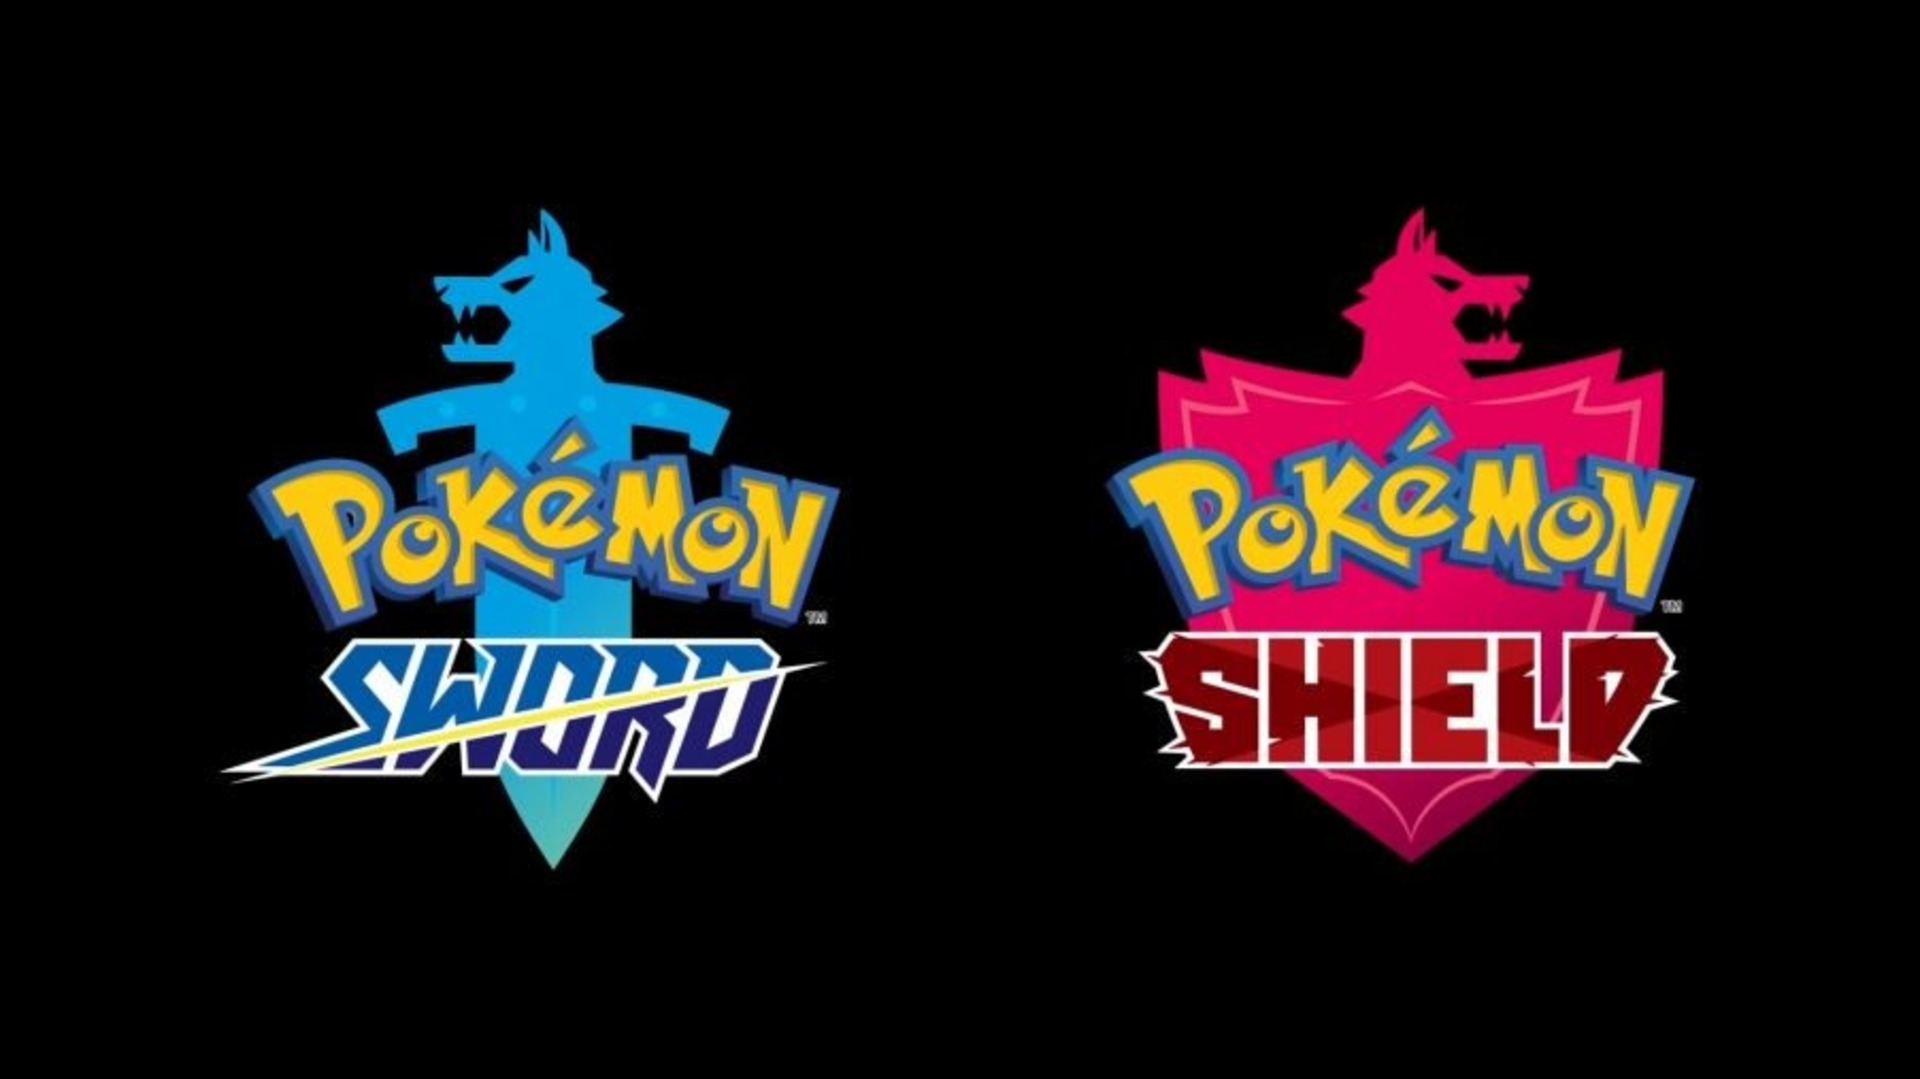 Pokemon Sword And Pokemon Shield game